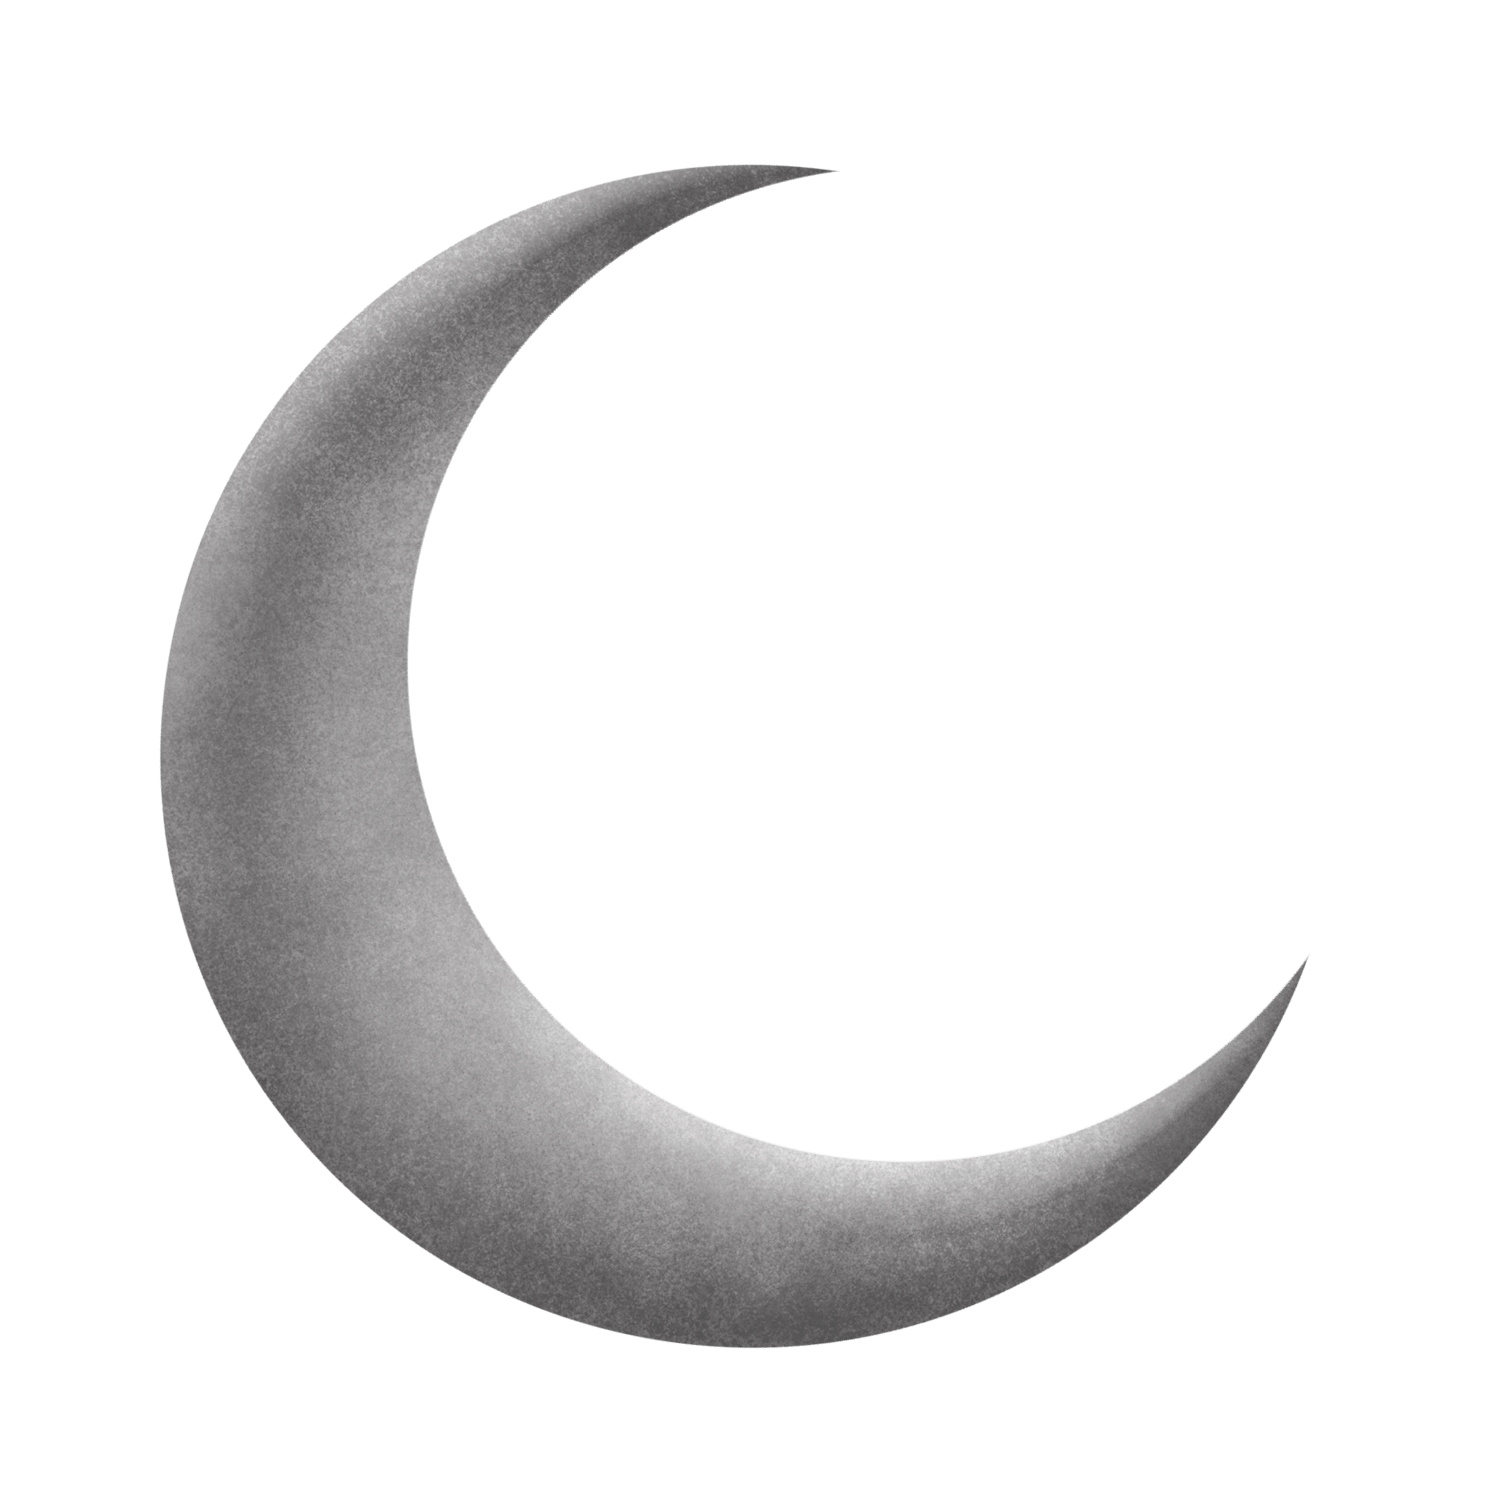 Silver Grey Moon Crescent transparent PNG.